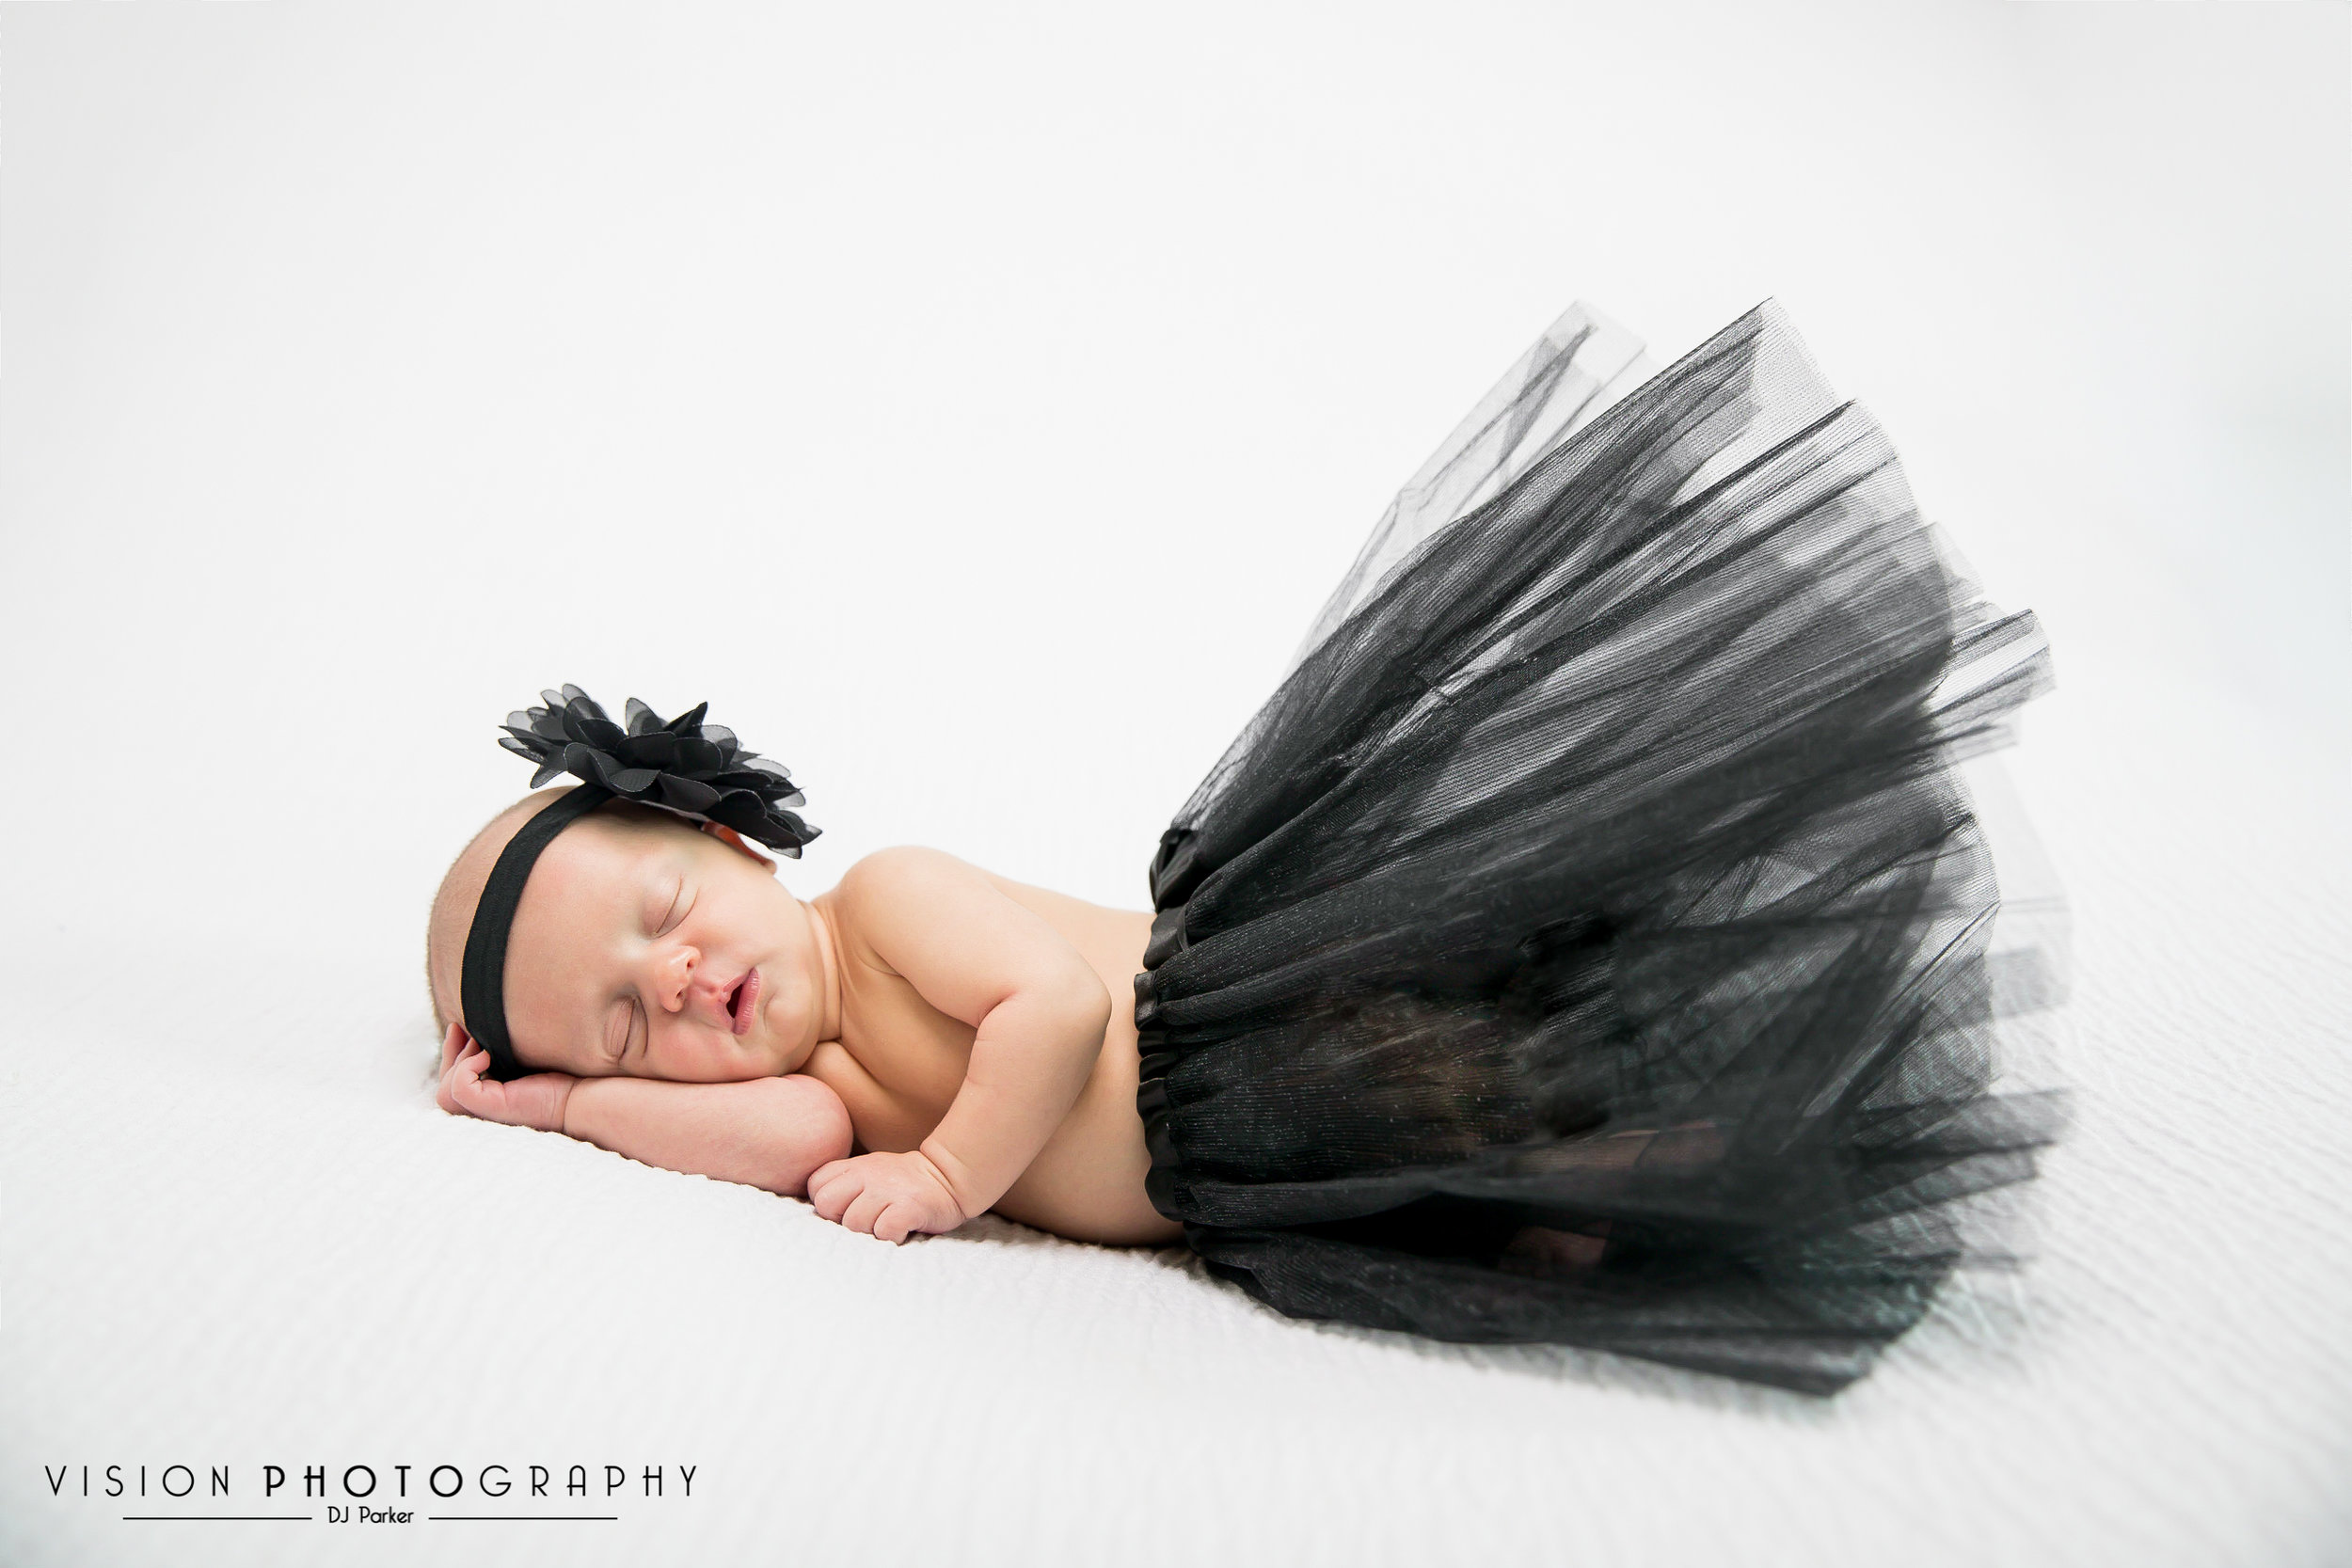 Newborn studio photography bean bag poser